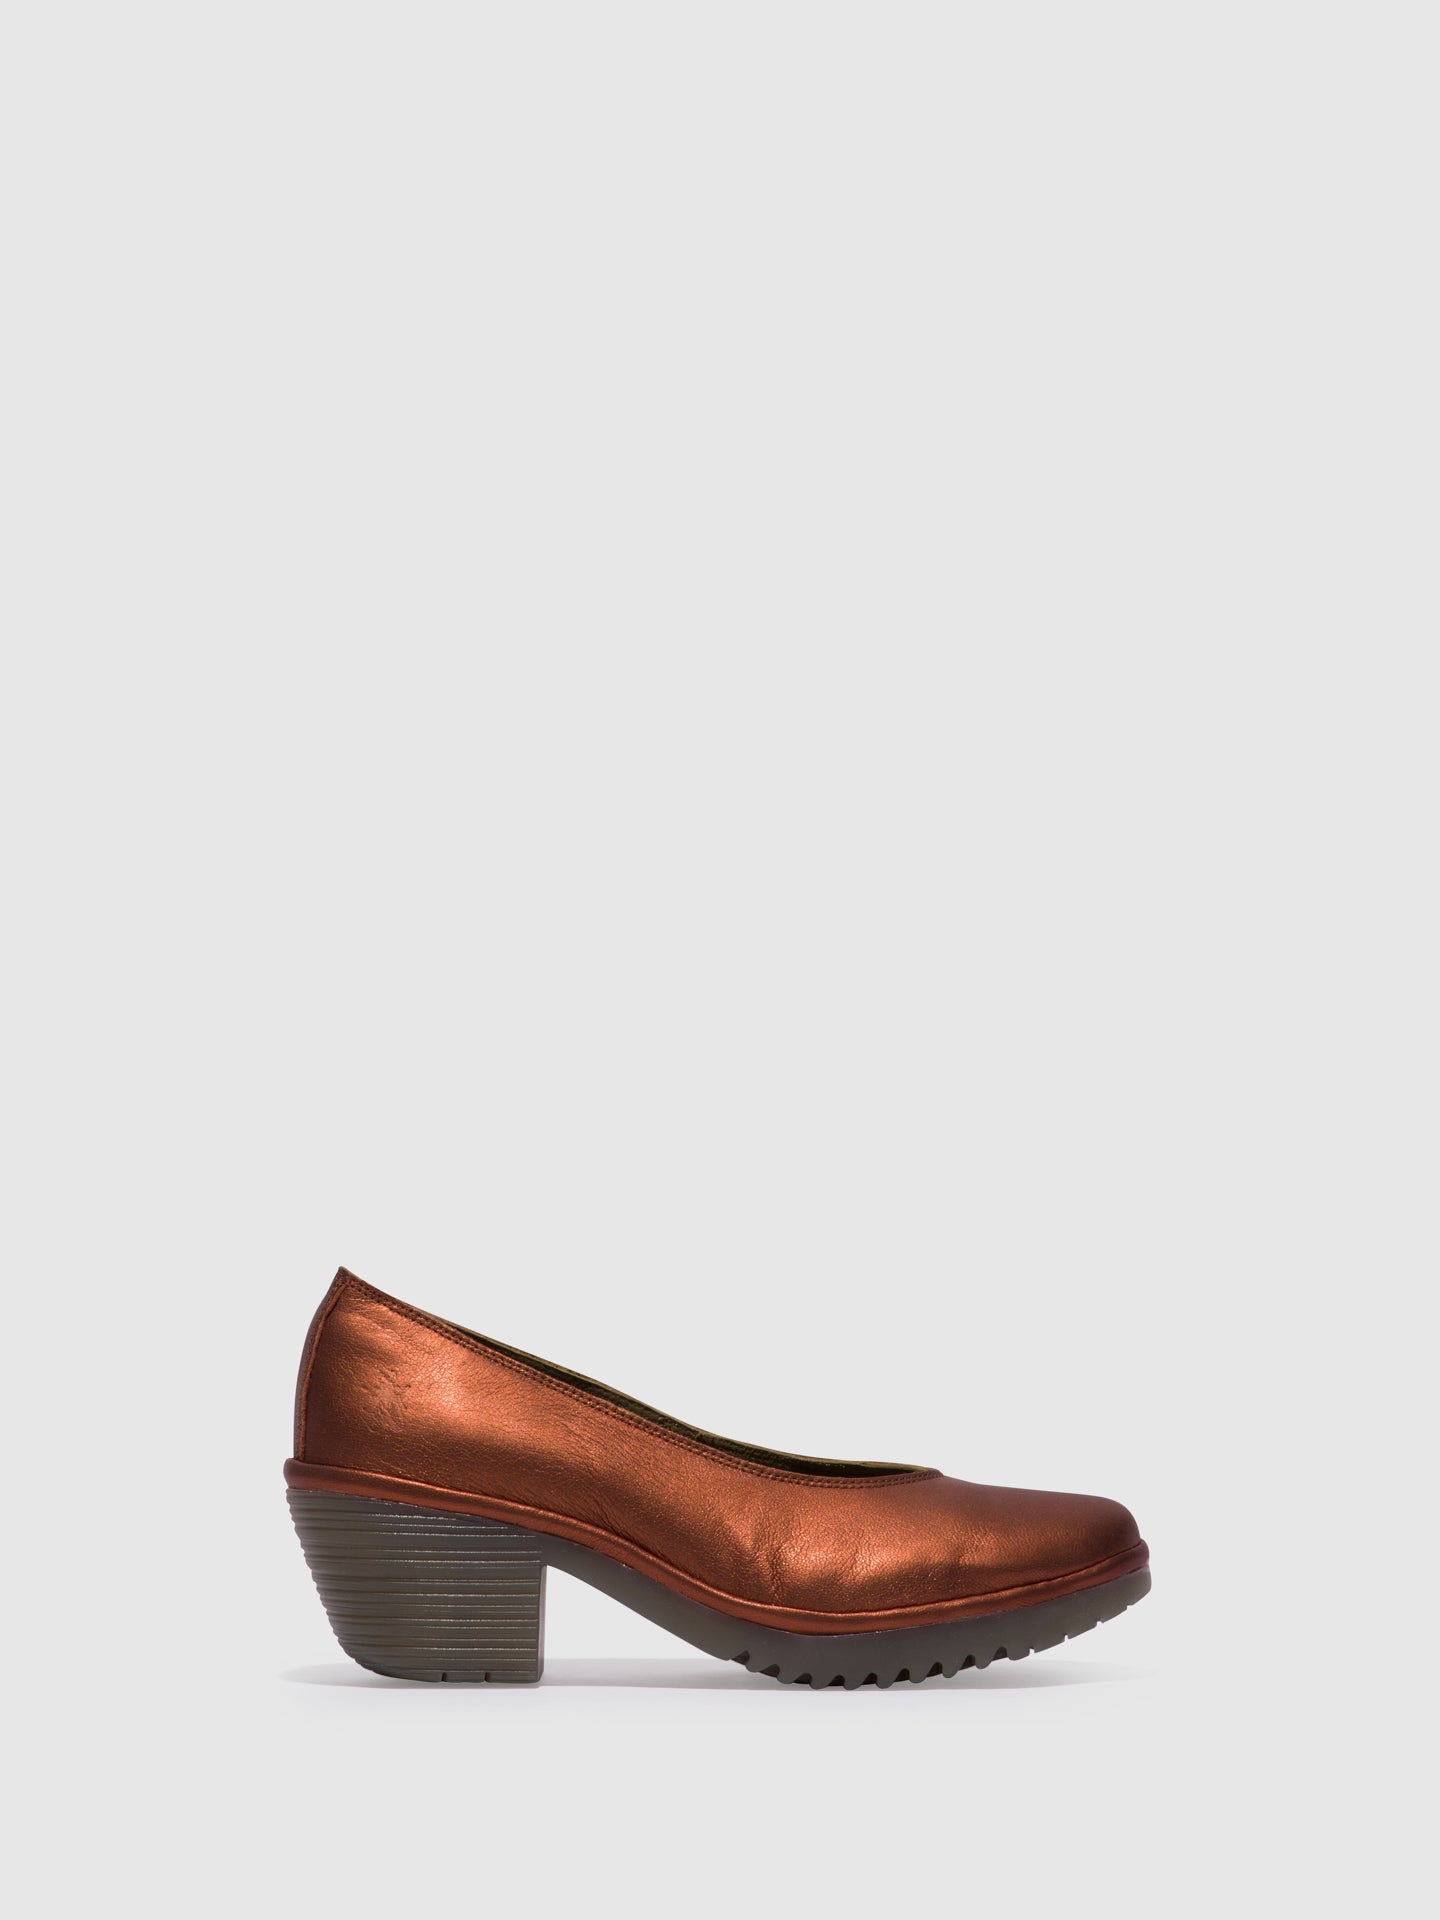 Fly London RosyBrown Round Toe Pumps